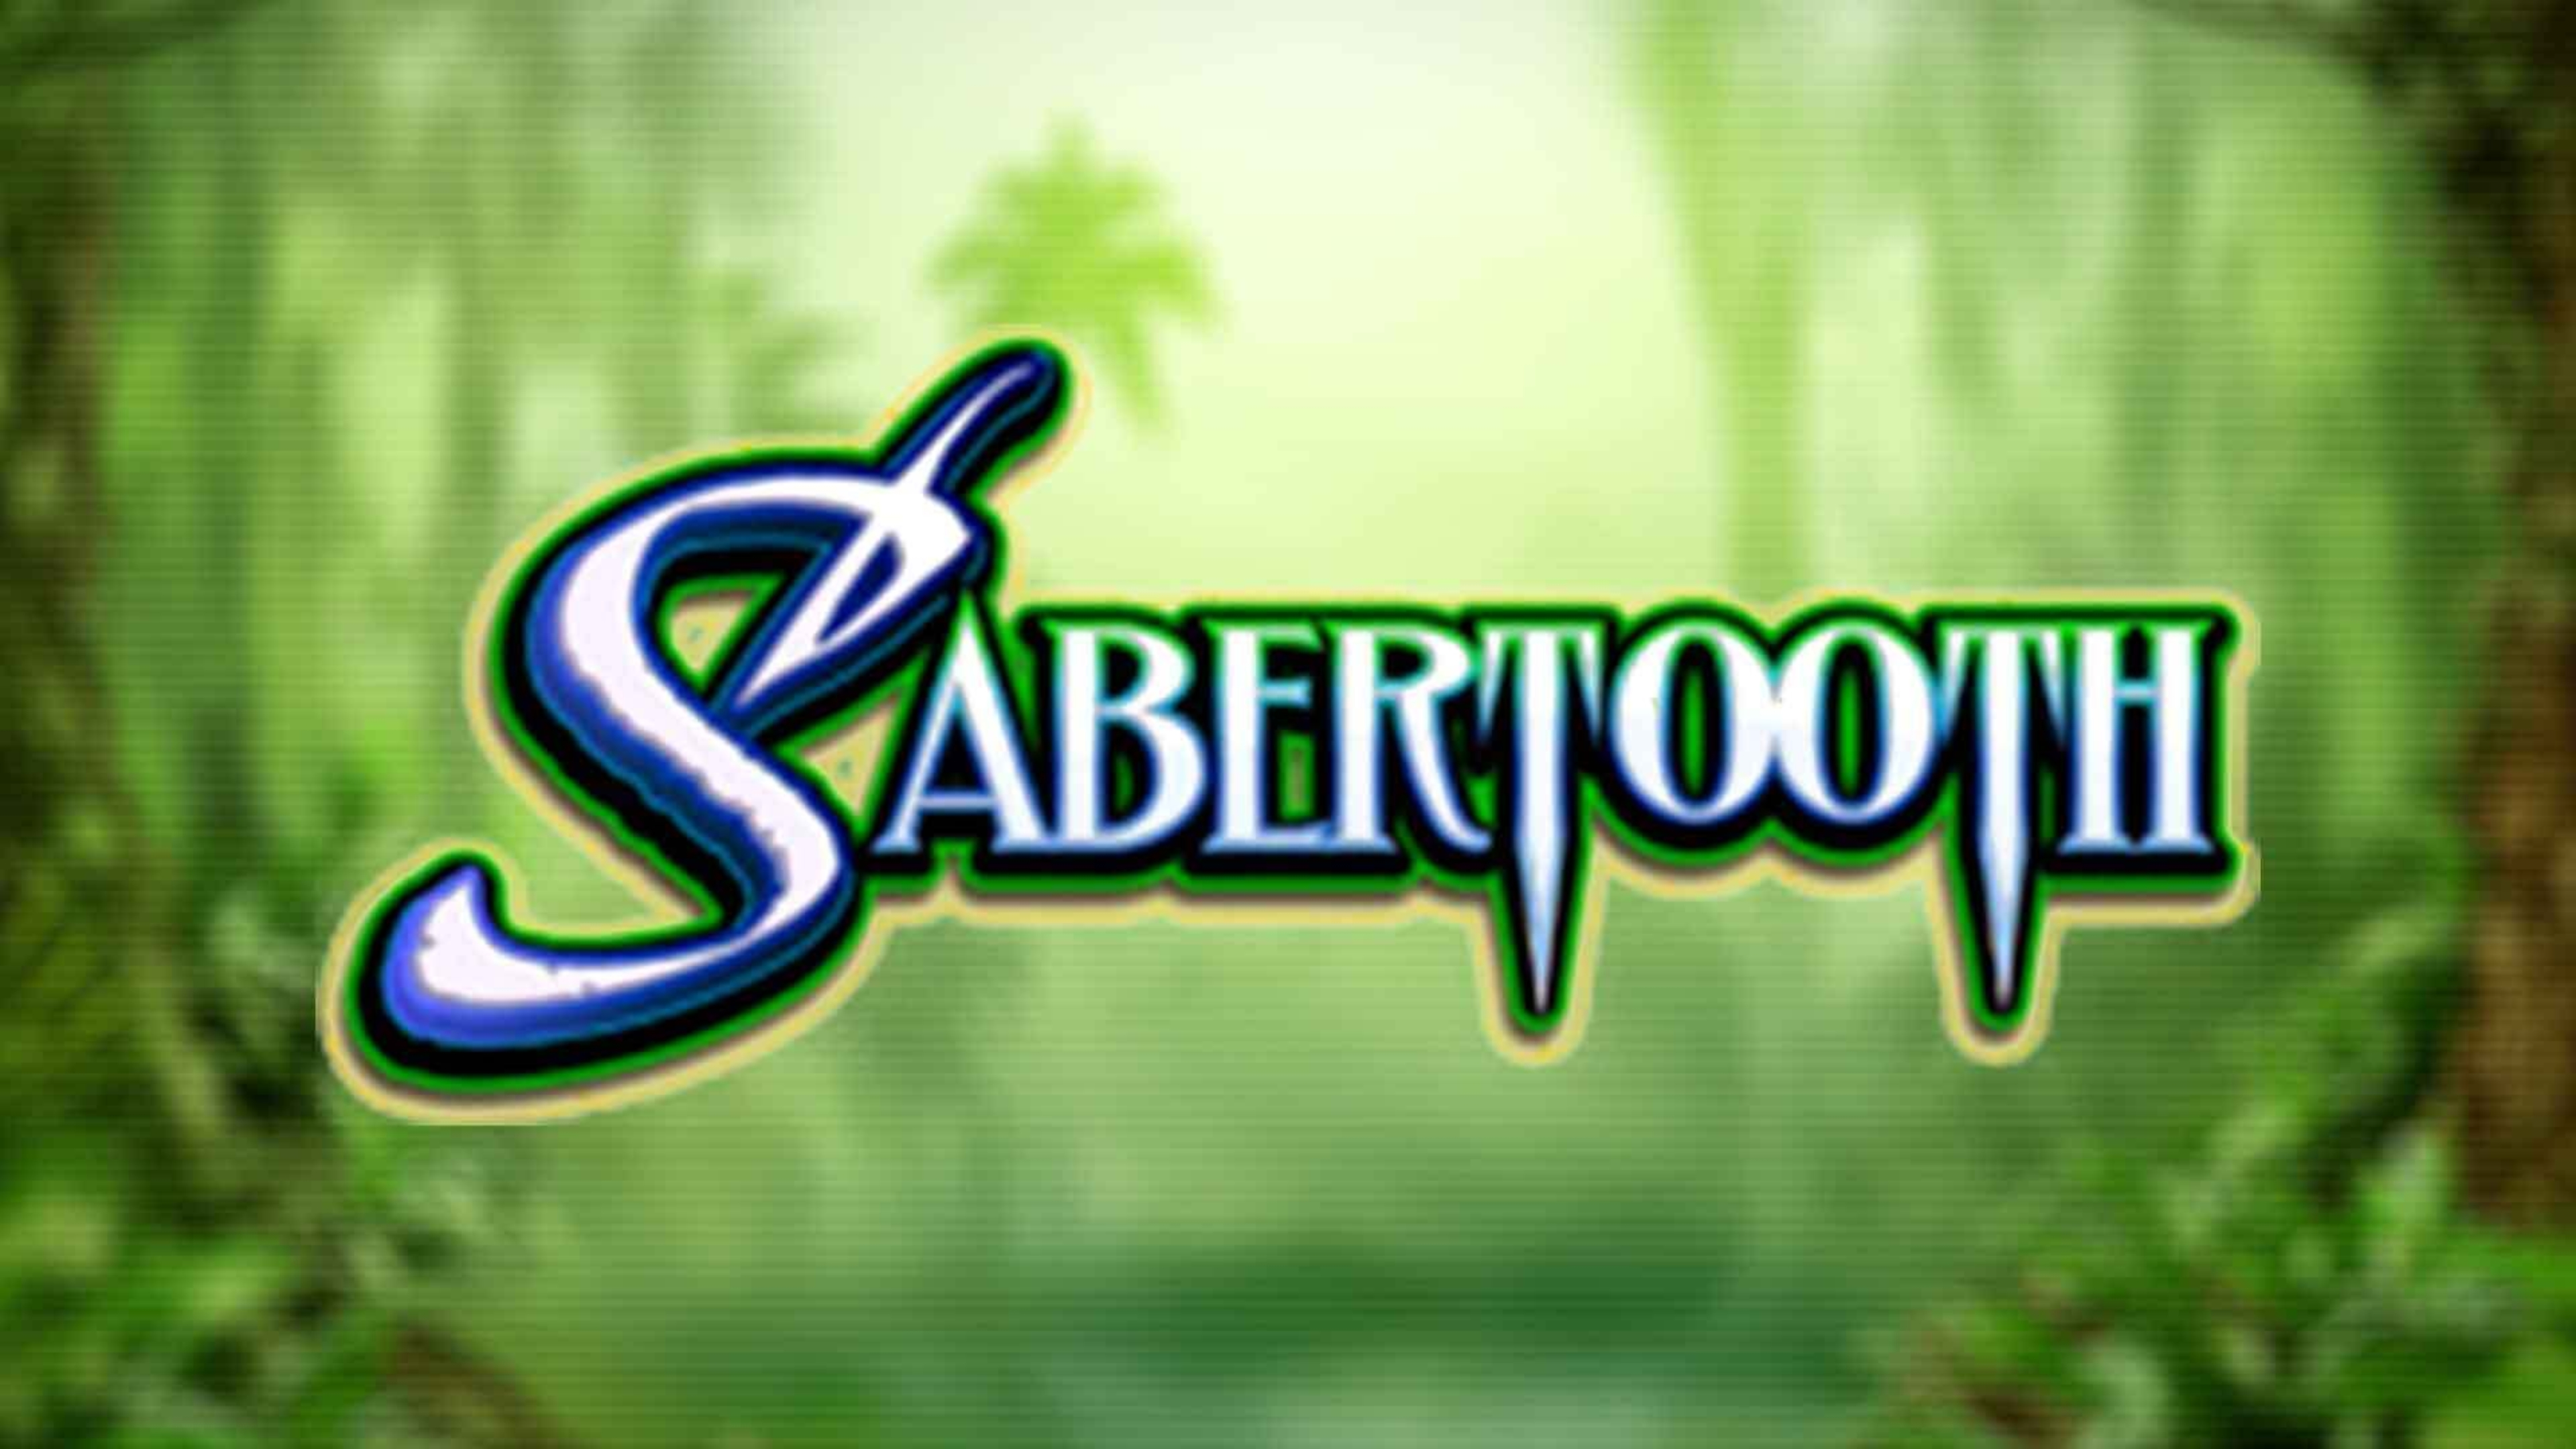 The Sabertooth Online Slot Demo Game by WMS